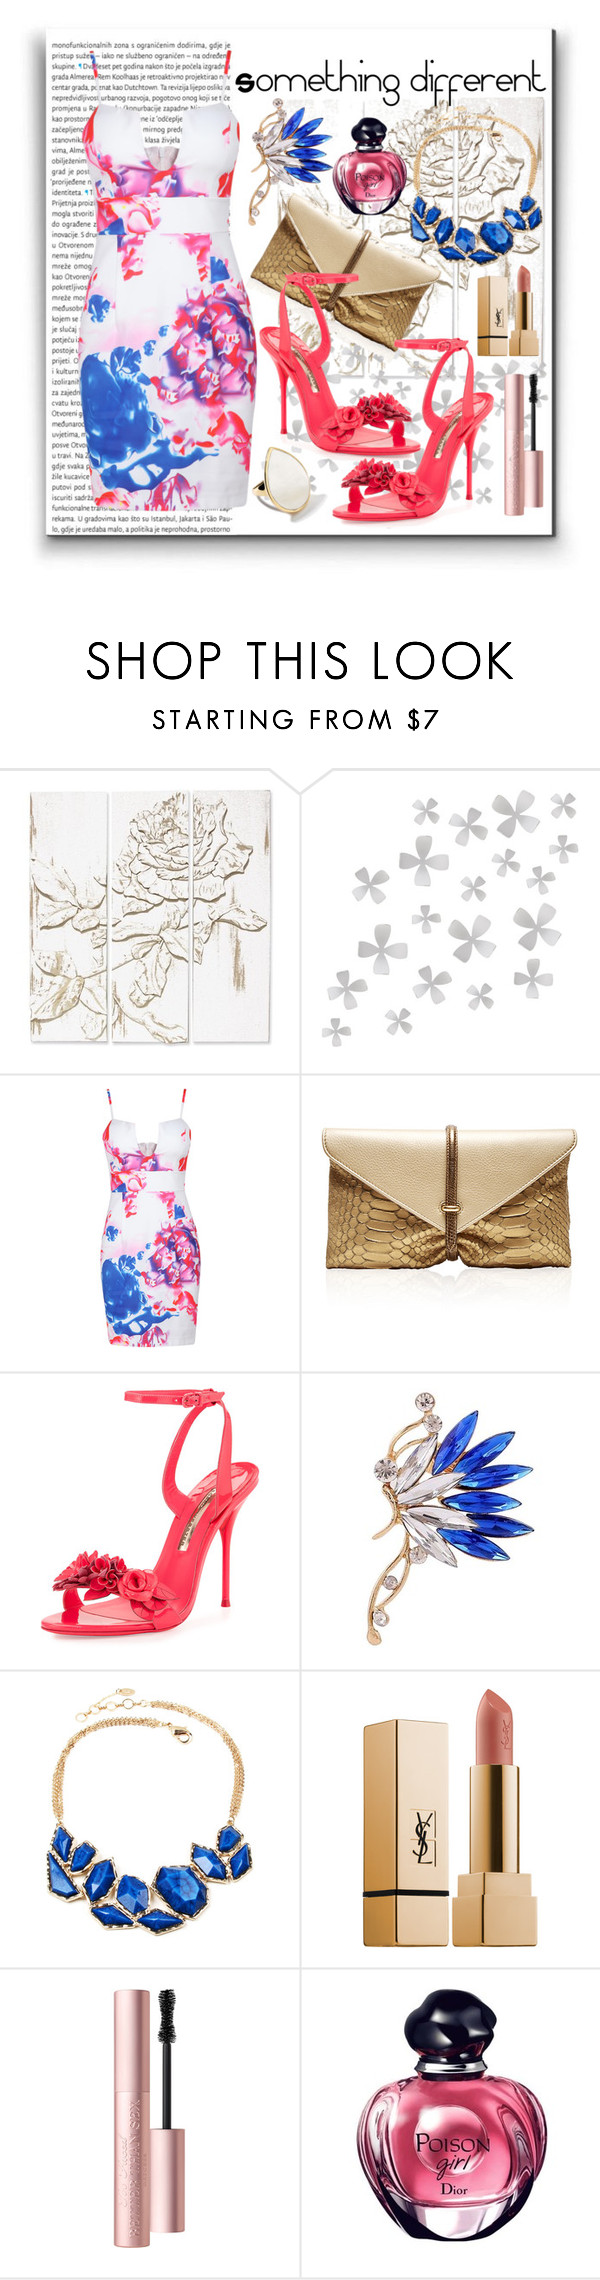 """""""Something different"""" by julyralewis ❤ liked on Polyvore featuring Oris, Palecek, Dot & Bo, VBH, Sophia Webster, Amrita Singh, Too Faced Cosmetics and Ippolita"""